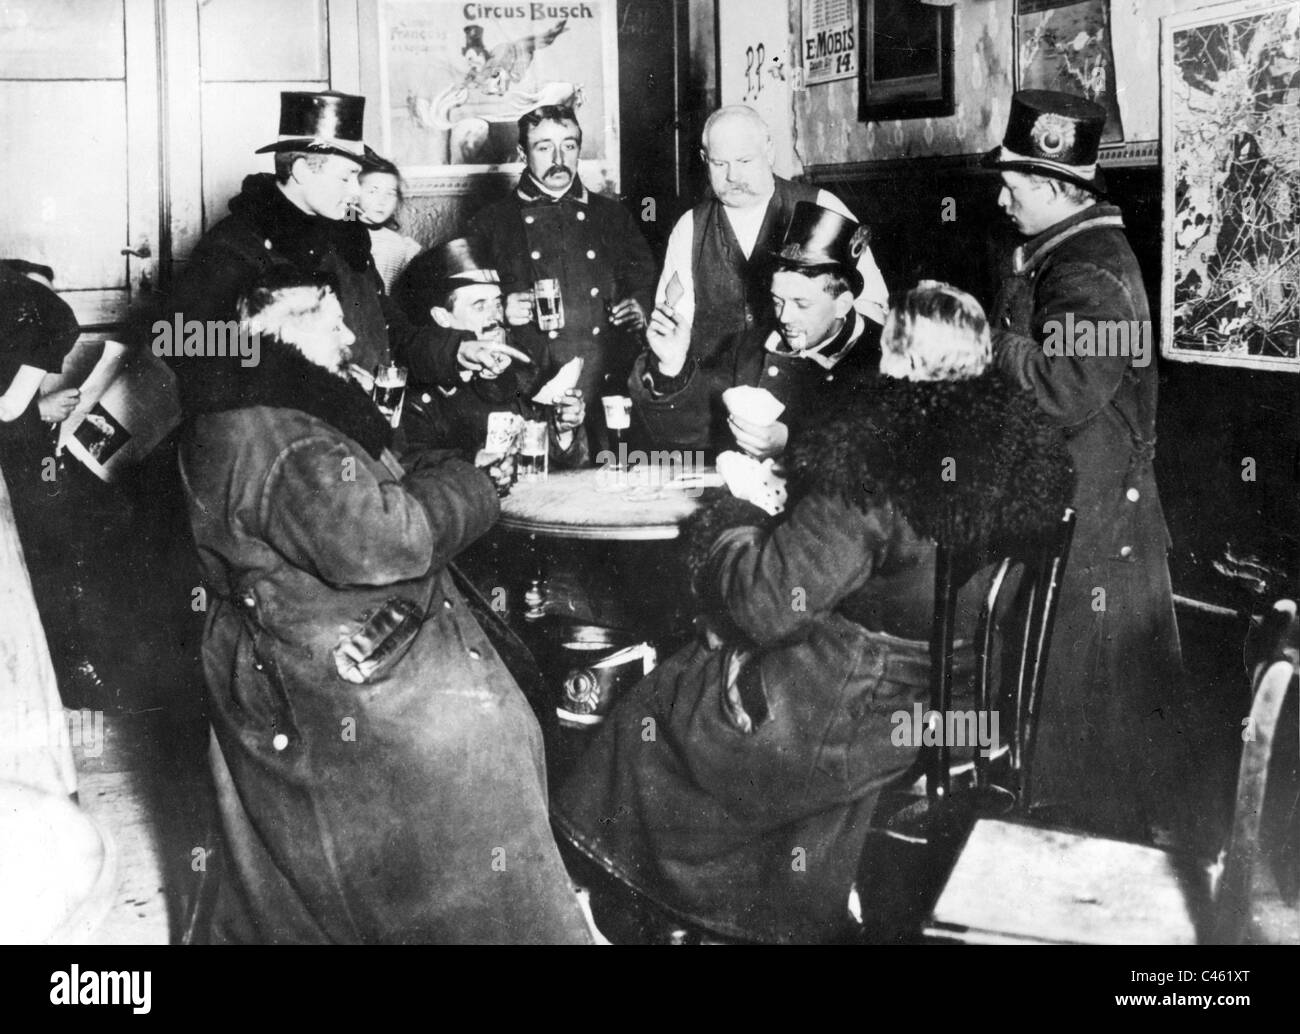 Berlin cabs coachman in the pub around the turn of the century - Stock Image